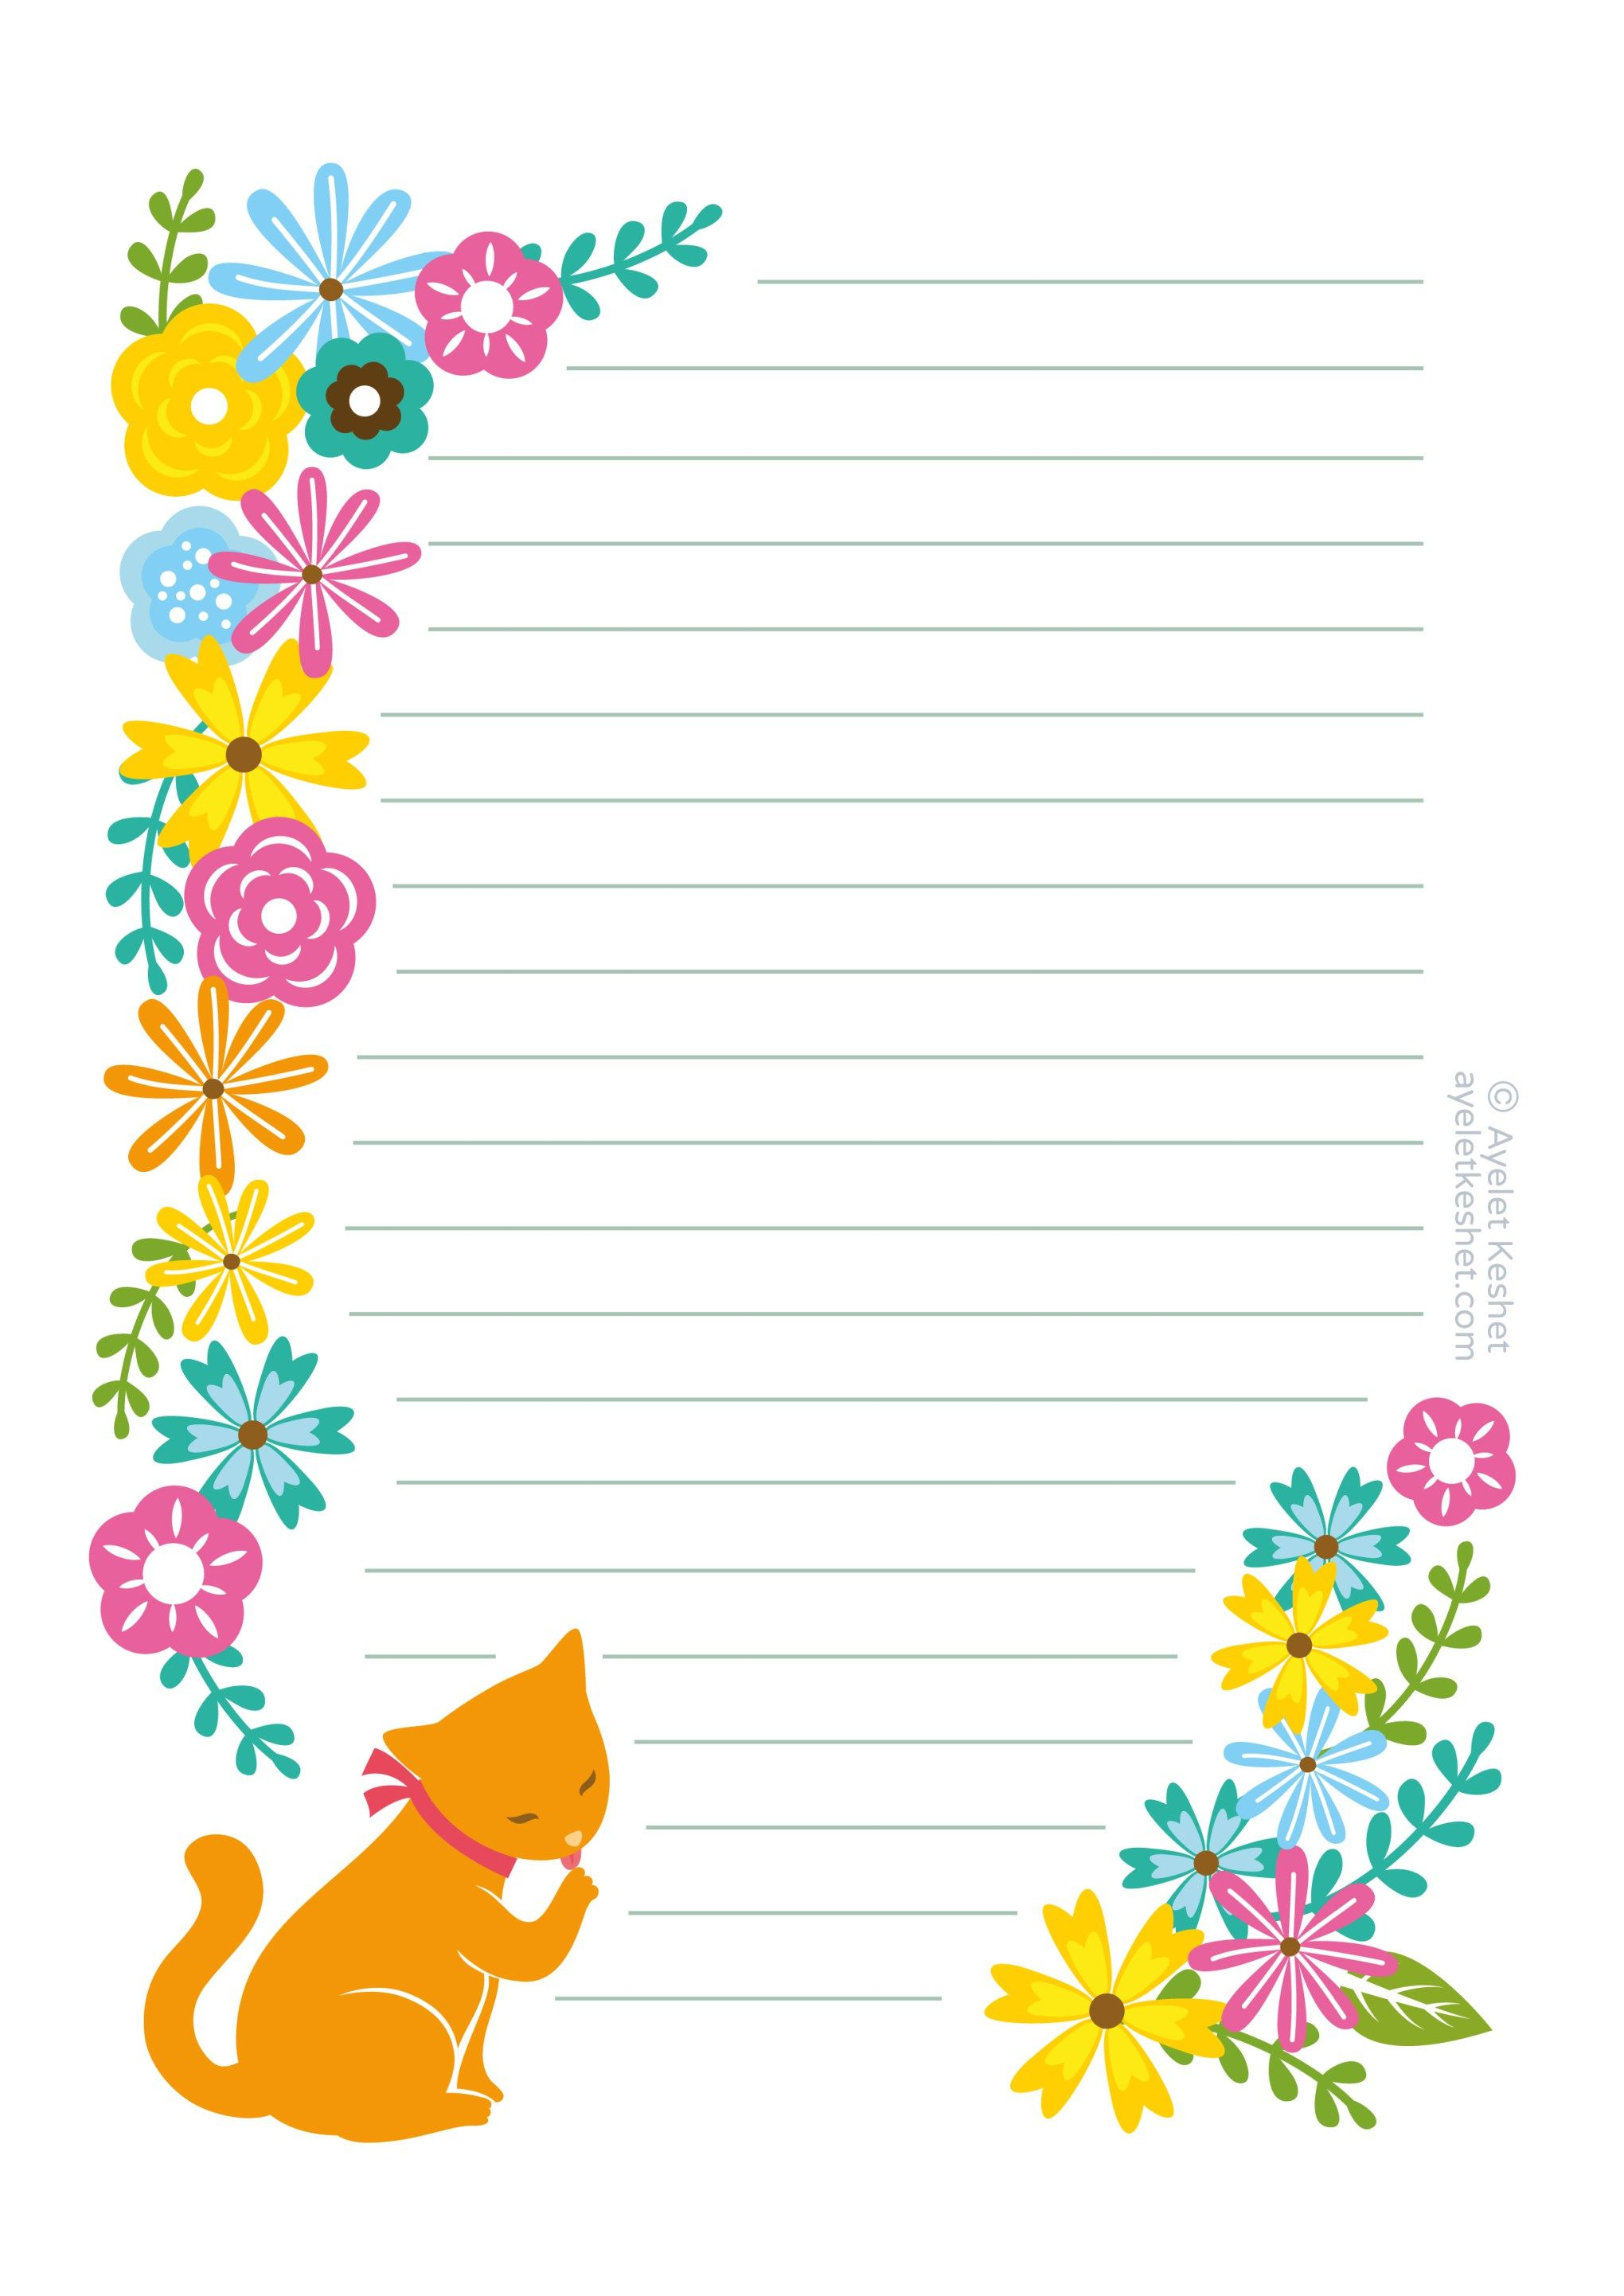 Cute Lined Paper Template, cute lined paper, cute lined paper printable, cute lined paper template, cute lined paper to print, lined paper cute, cute lined paper black and white, cute lined animal paper download, free clip art cute lined paper, printable lined paper cute, cute lined paper for writing, lined cute stationery paper, lined cute paper small lines, kawaii cute lined paper, cute lined paper summer, cute drawings on lined paper, cute lined college ruled paper, kappa paper lined cute, cute printable lined preschool paper, lined paper cute teachery that says all about, cute french lined paper, how to make cute three-d letters on lined paper, cute animals on lined paper, cute dorm decorations using lined paper, cute lined paper summer pinapple, elementary lined writing paper cute, cute lined college ruled paper printable, cute halloween lined paper, cute lined paper coloring pages, cute lined paper backgrounds for powerpoint, cute lined letter paper, lined paper for cute letter, cute lined paper refill for 3 x 5 binders, lined paper cute tumblr backgrounds, cute lined paper printable blue, printeable lined paper with cute border, printable lined cute stationery paper, cute lined paper journal, cute dog paper lined, cute lined paper pattern background, cute lined paper free printable, cute lined paper headers, cute simple lined letter paper template, cute lined paper to write on for geandmother, muji high quality recycled paper lined notebook. these look cute and sleek. ..., what to make ou of glue lined paper cute tips and toilet paper, cute christmas lined paper, cute lined paper to write on, cute lined paper old looking, cute lined paper gold, cute lined writing paper